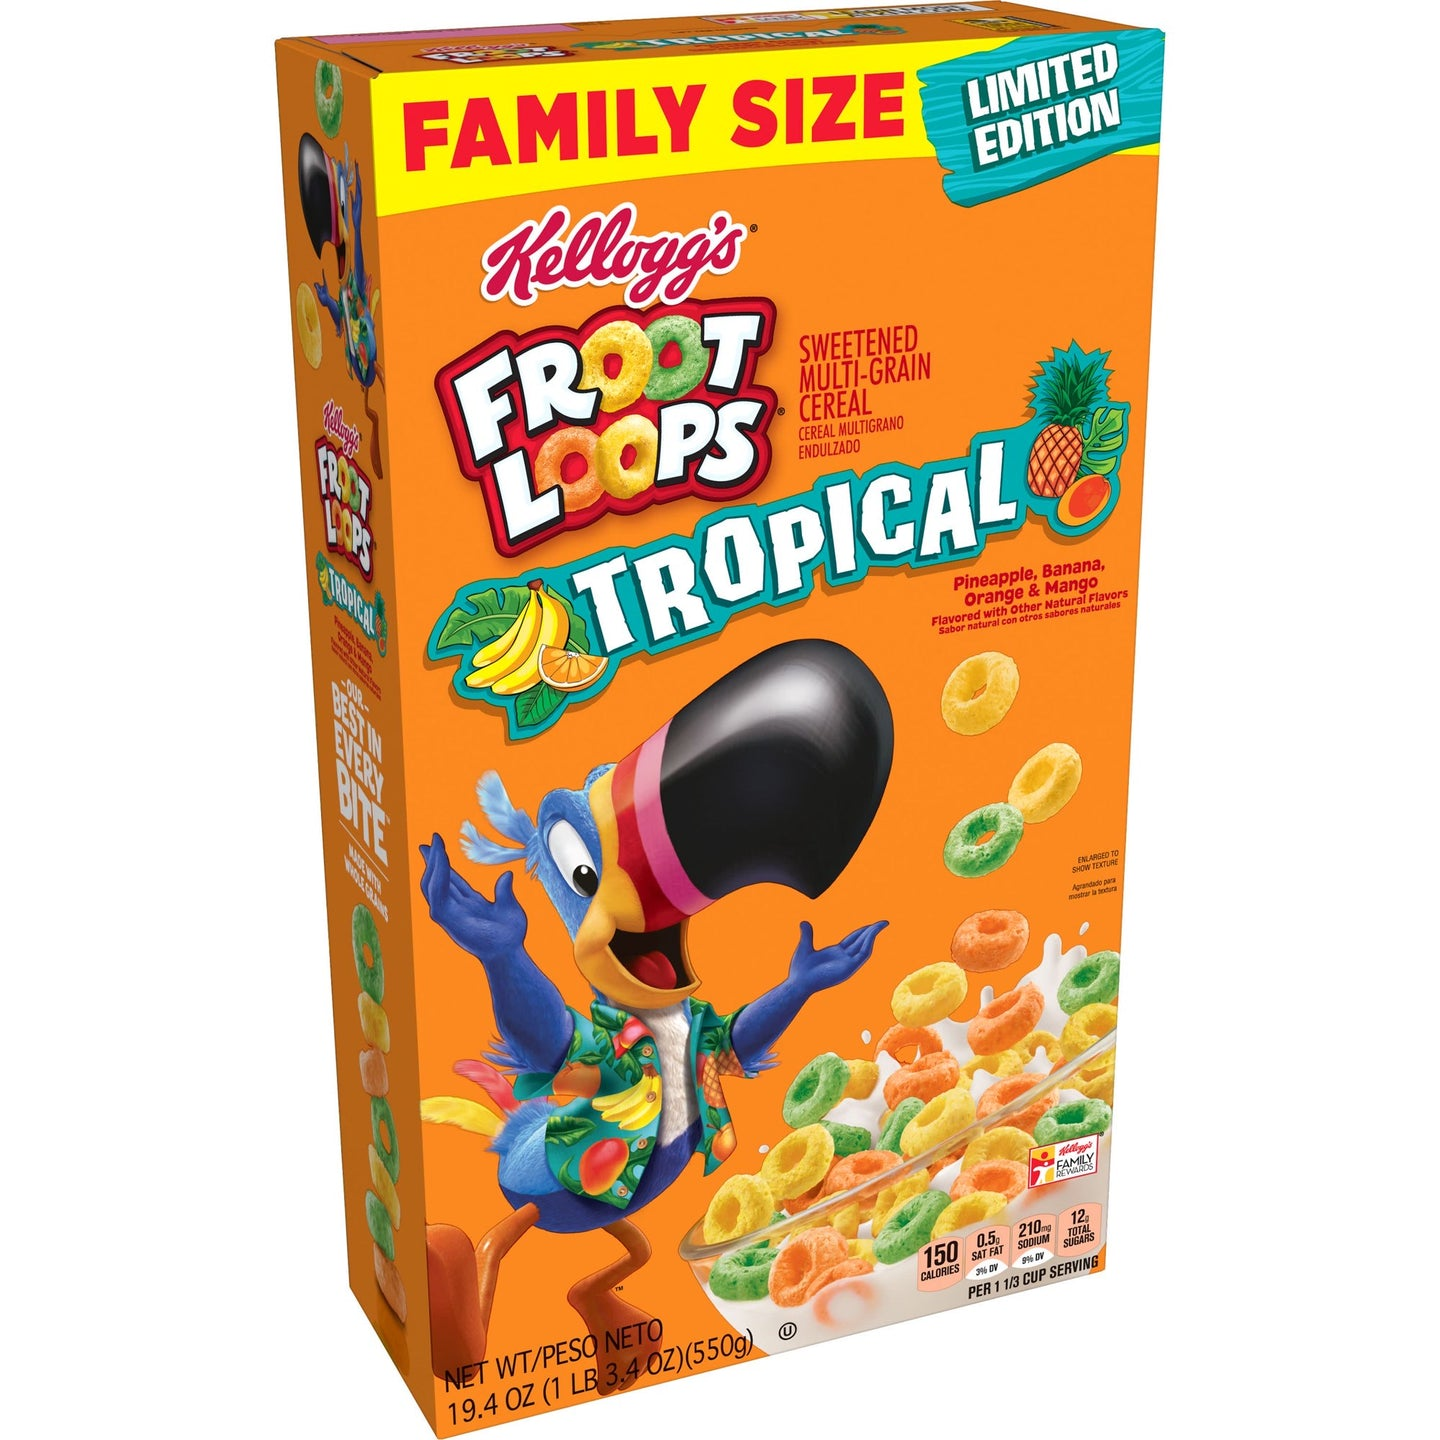 Froot Loops Tropical Limited Edition 19.4 oz Family Size